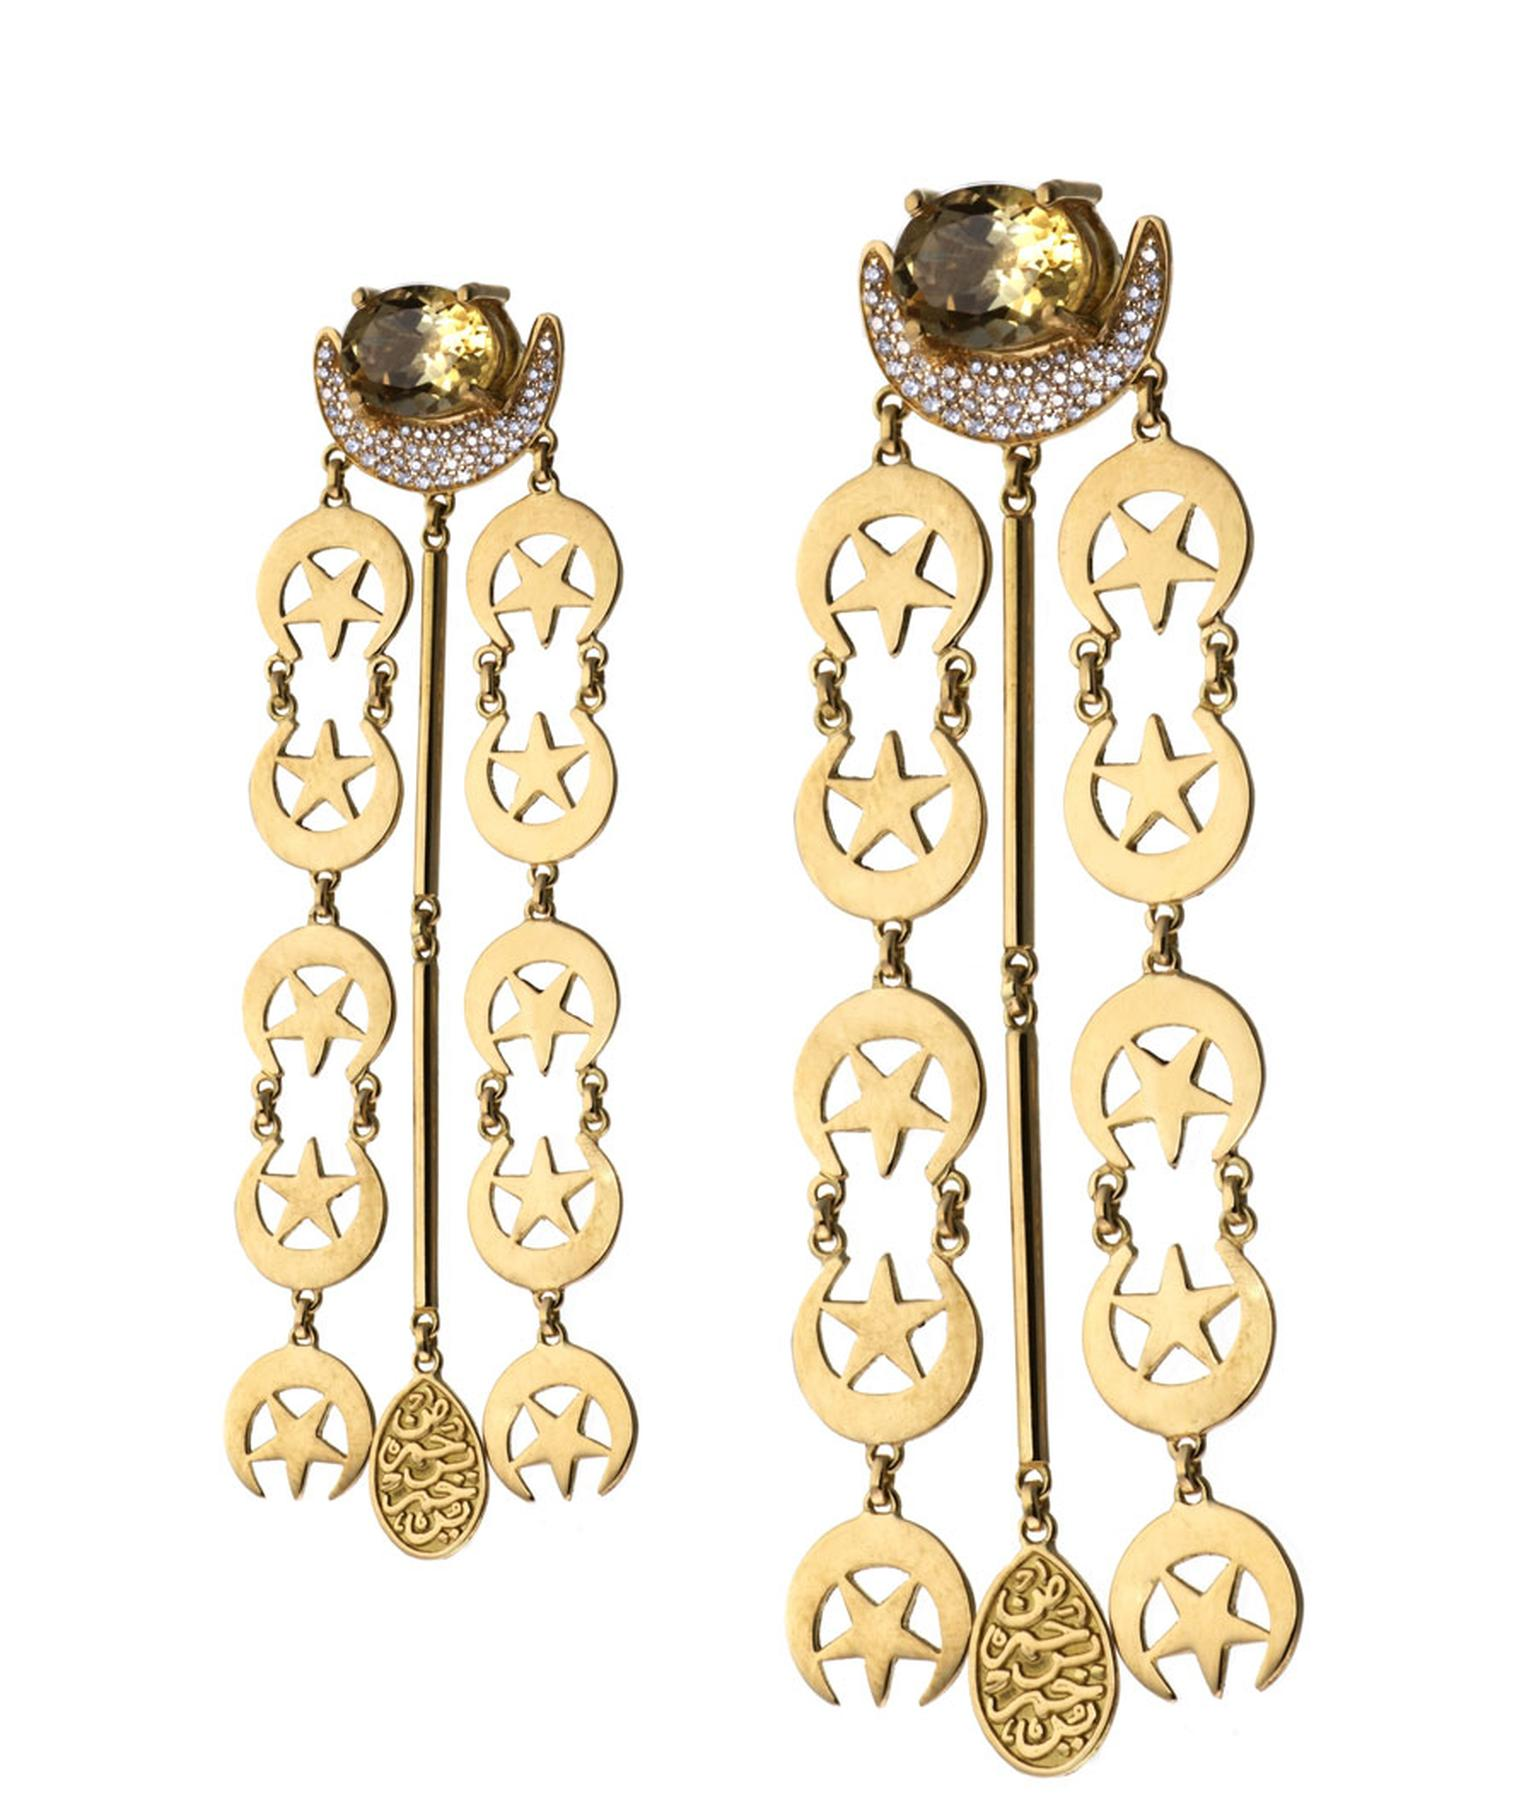 Azza-Fahmy-18ct-Gold-Crescent-Earrings-with-semi-precious-st.jpg